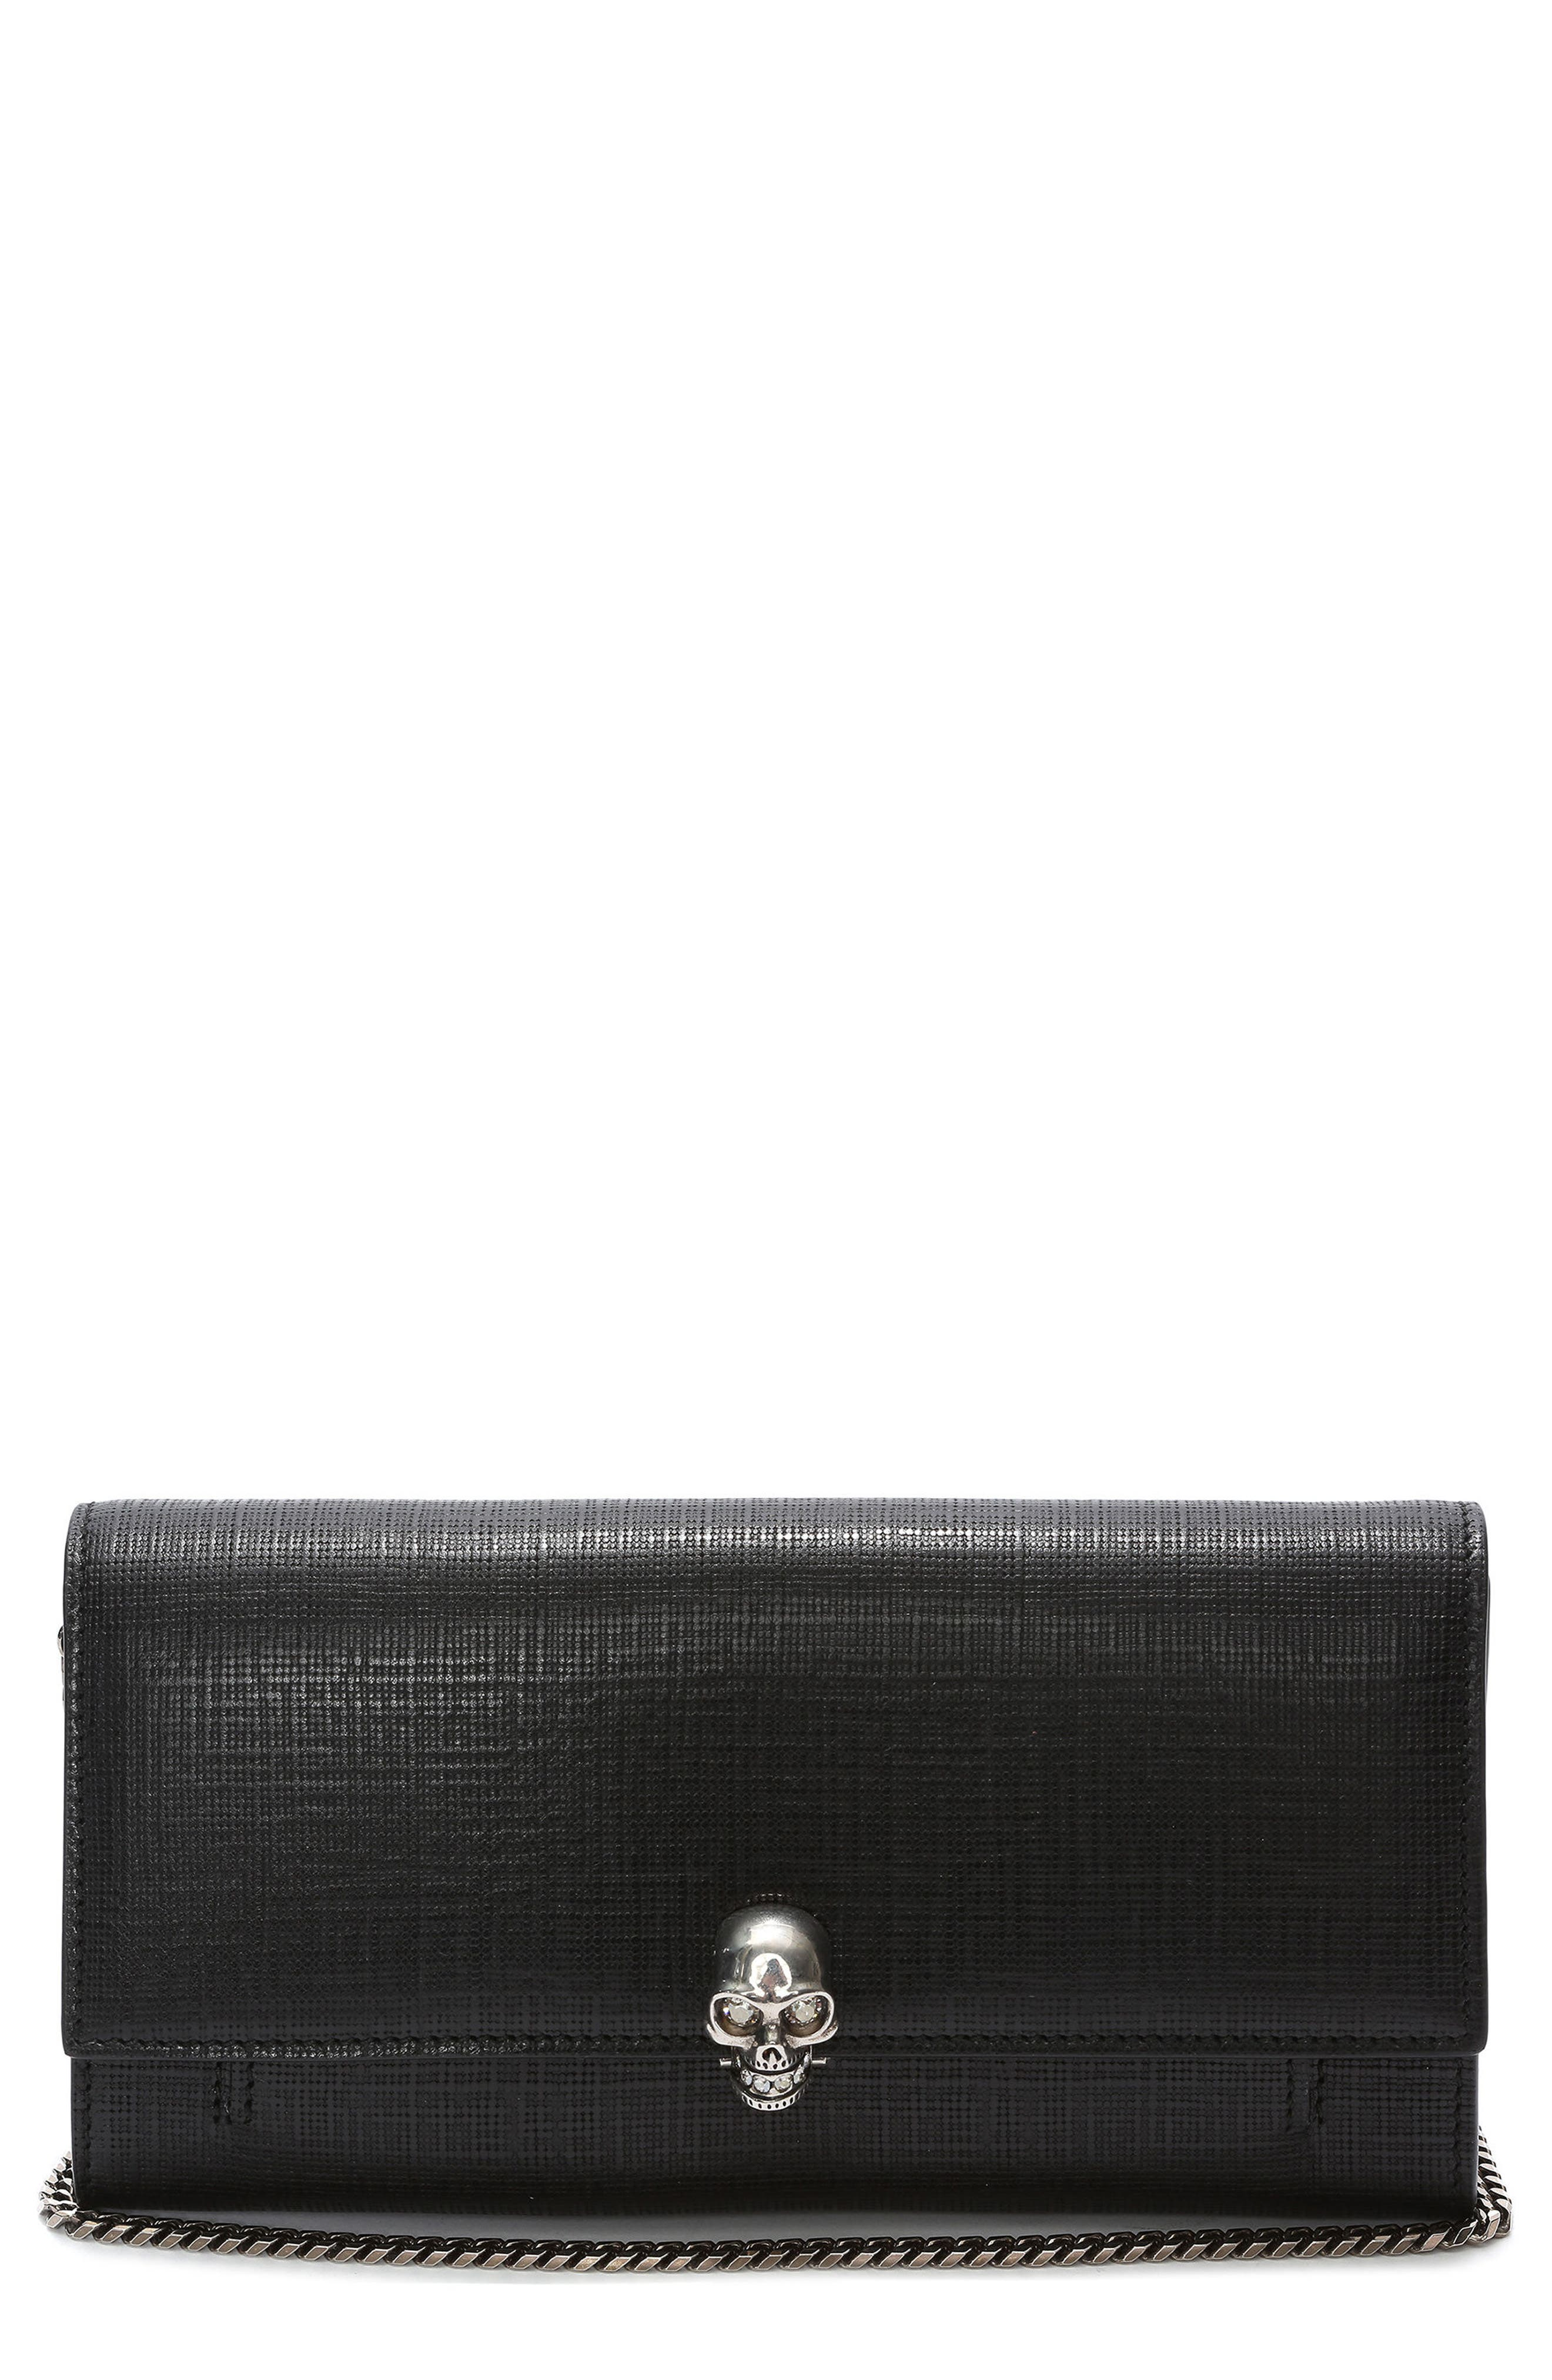 Alexander McQueen Embossed Leather Wallet on a Chain